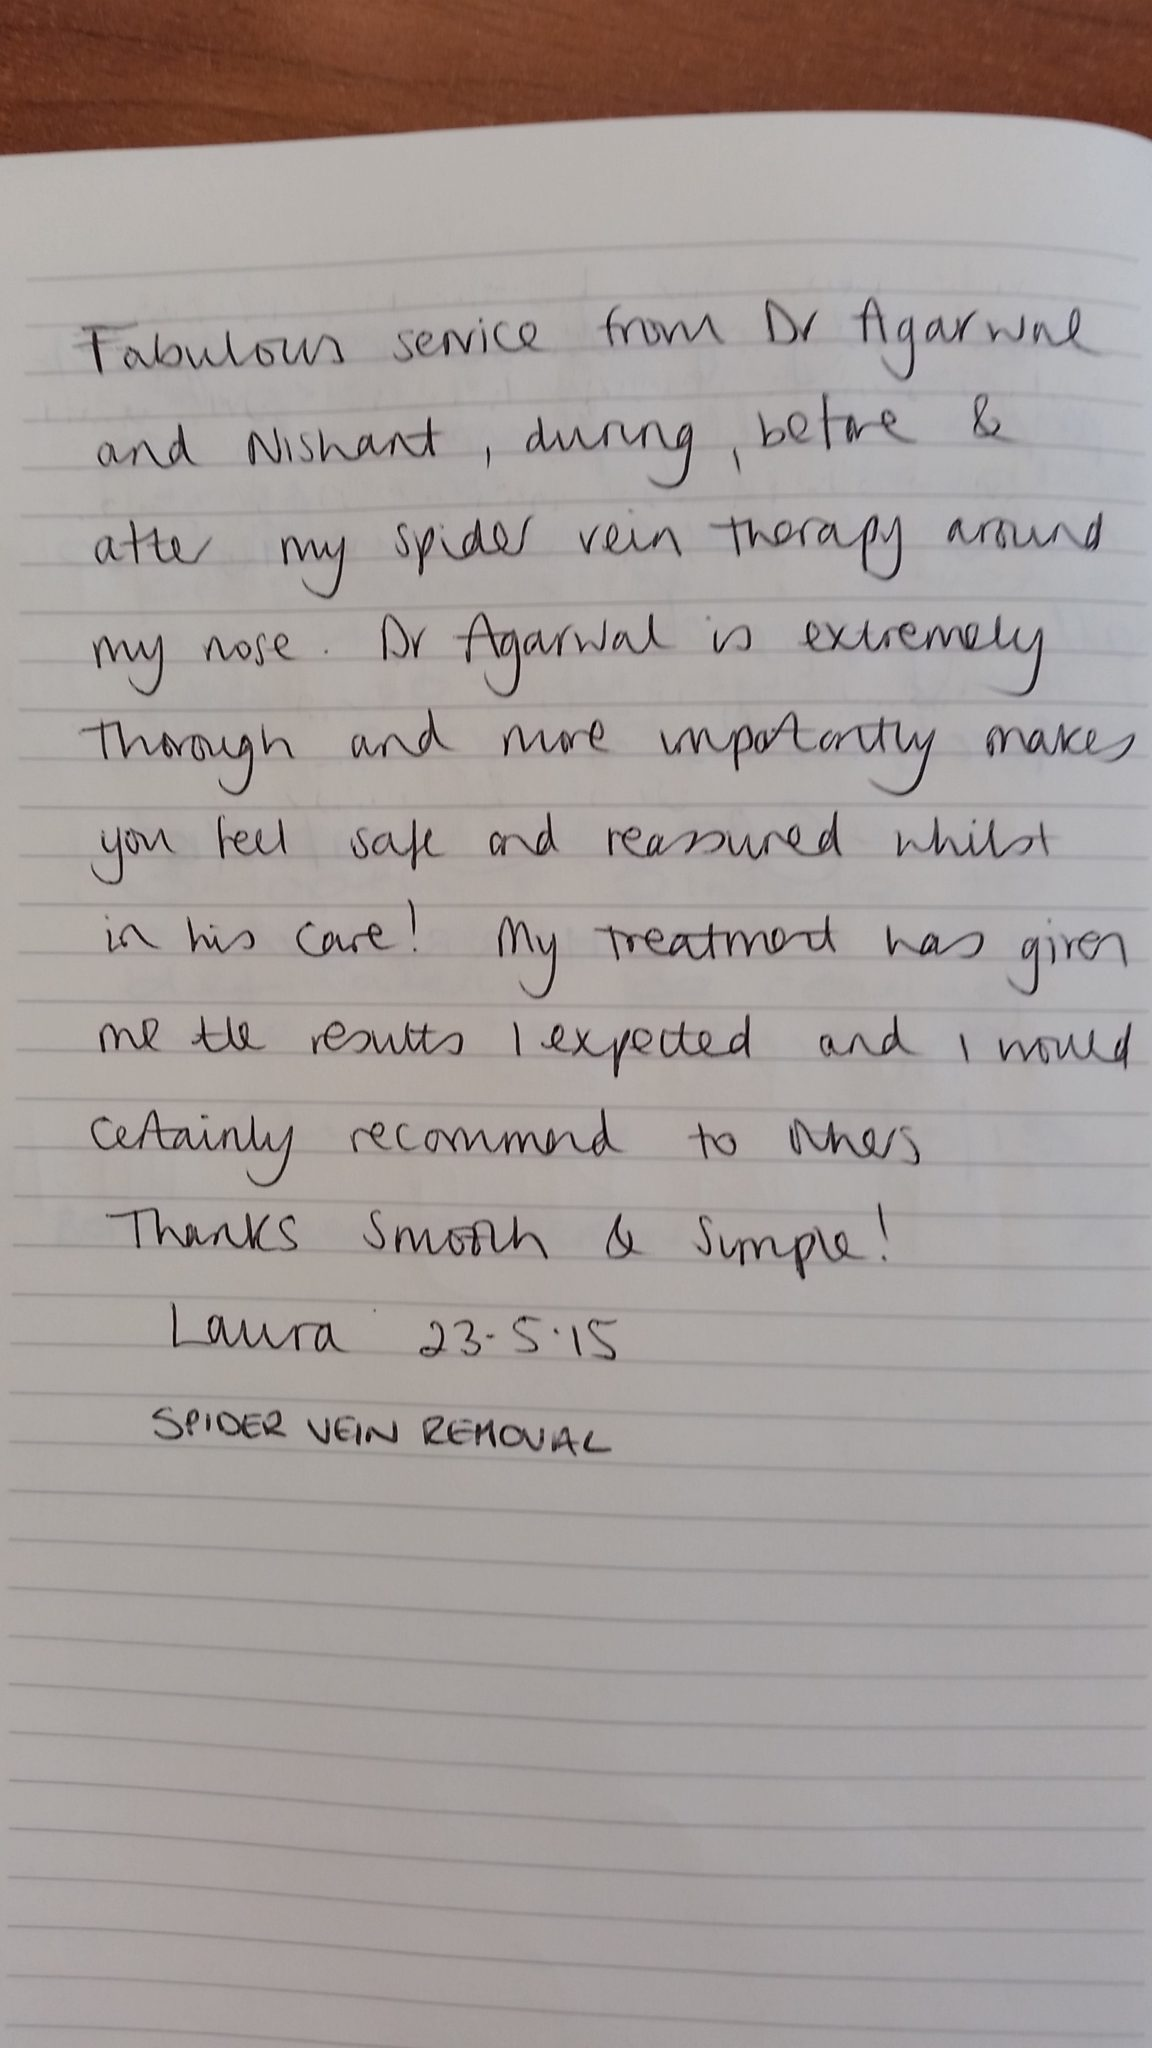 Facial Vein Removal Testimonial - Smooth and Simple